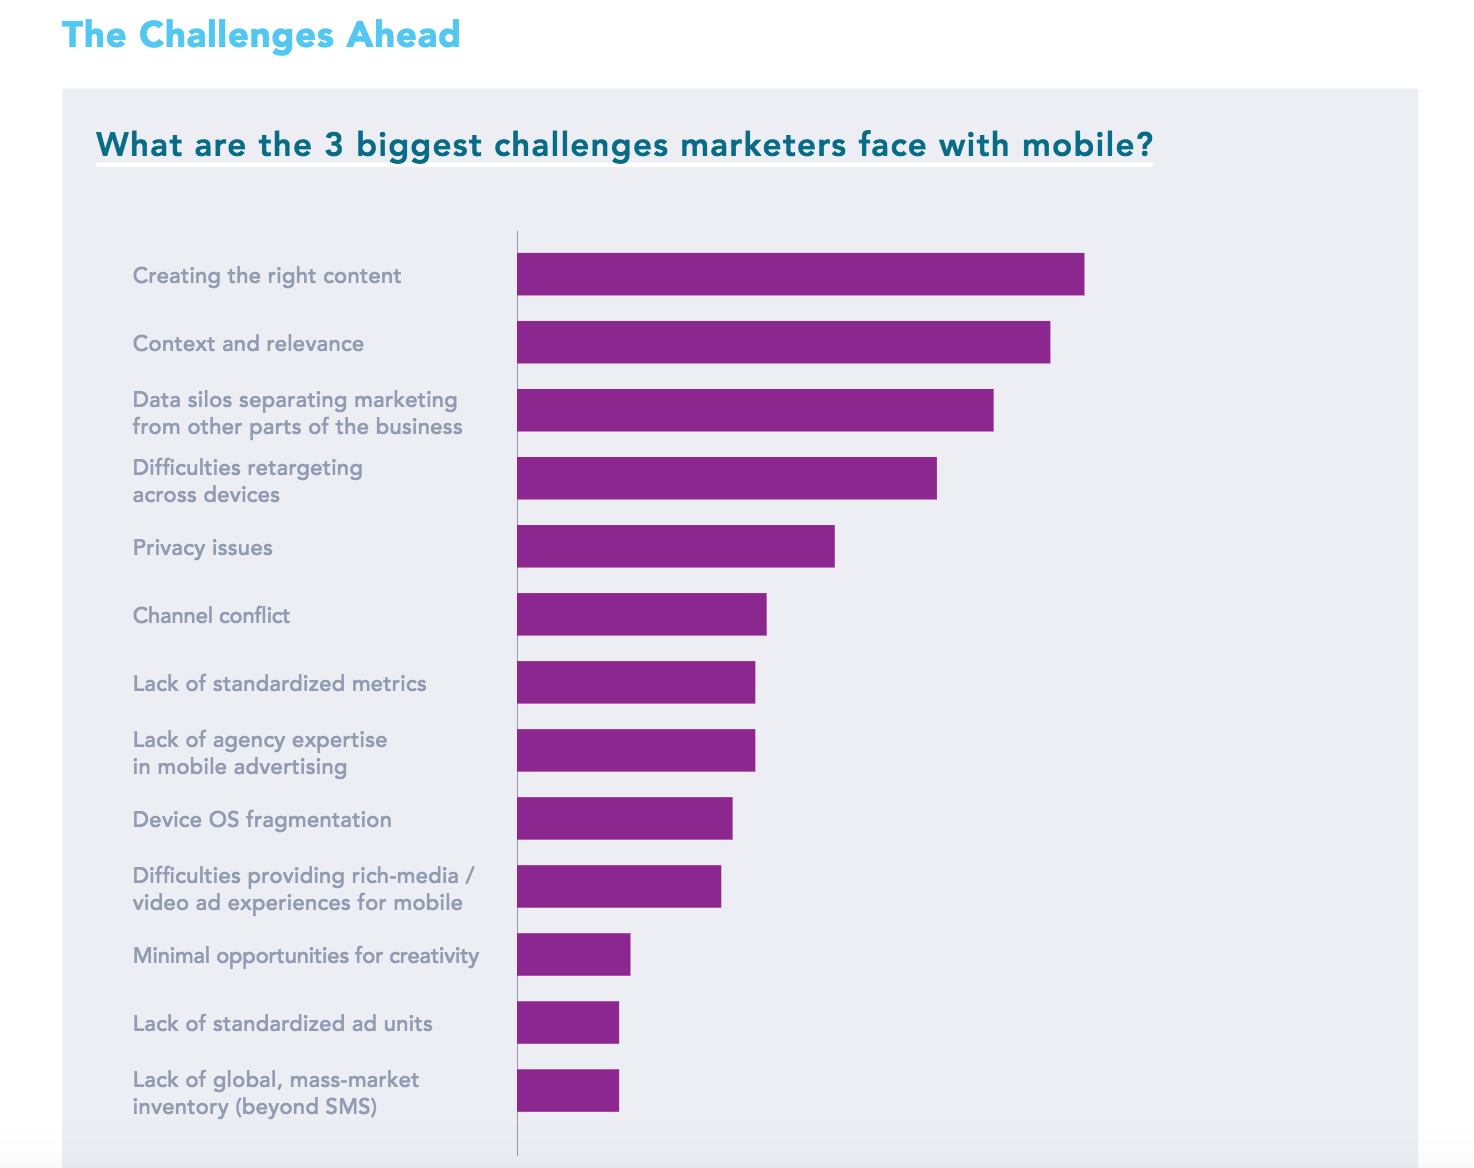 These are the biggest challenges marketers are facing with mobile